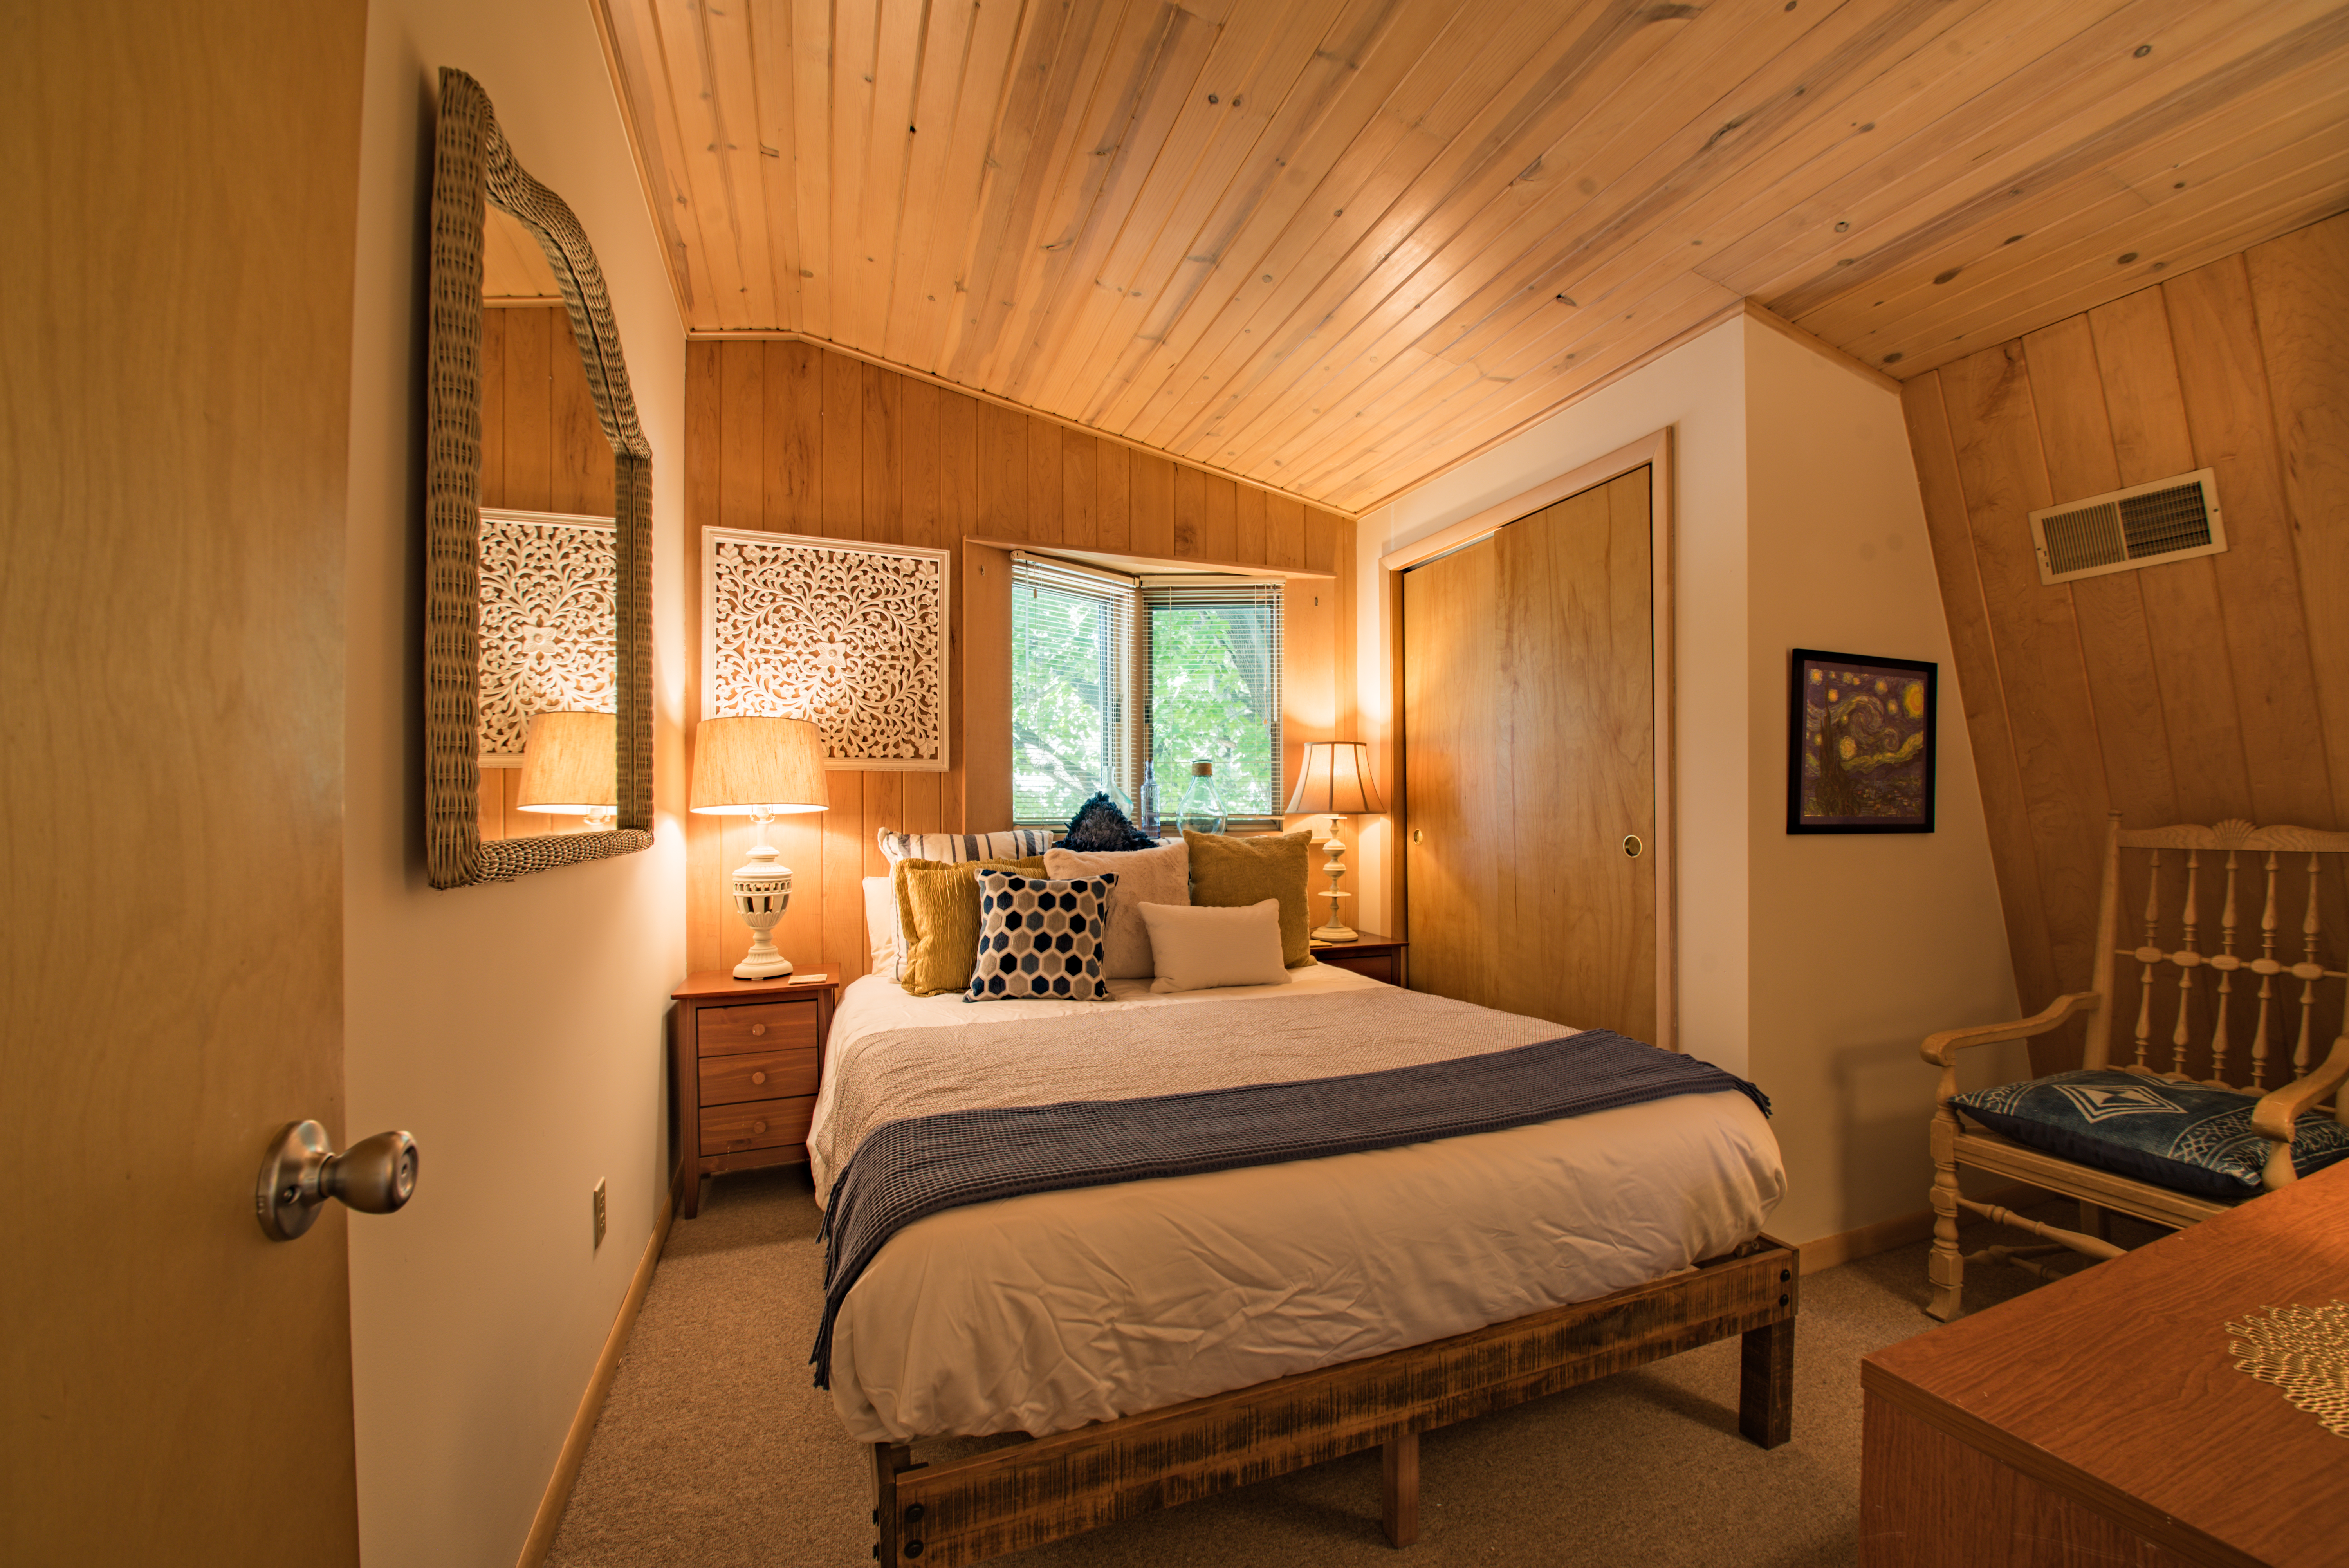 Bedroom with closet and queen bed